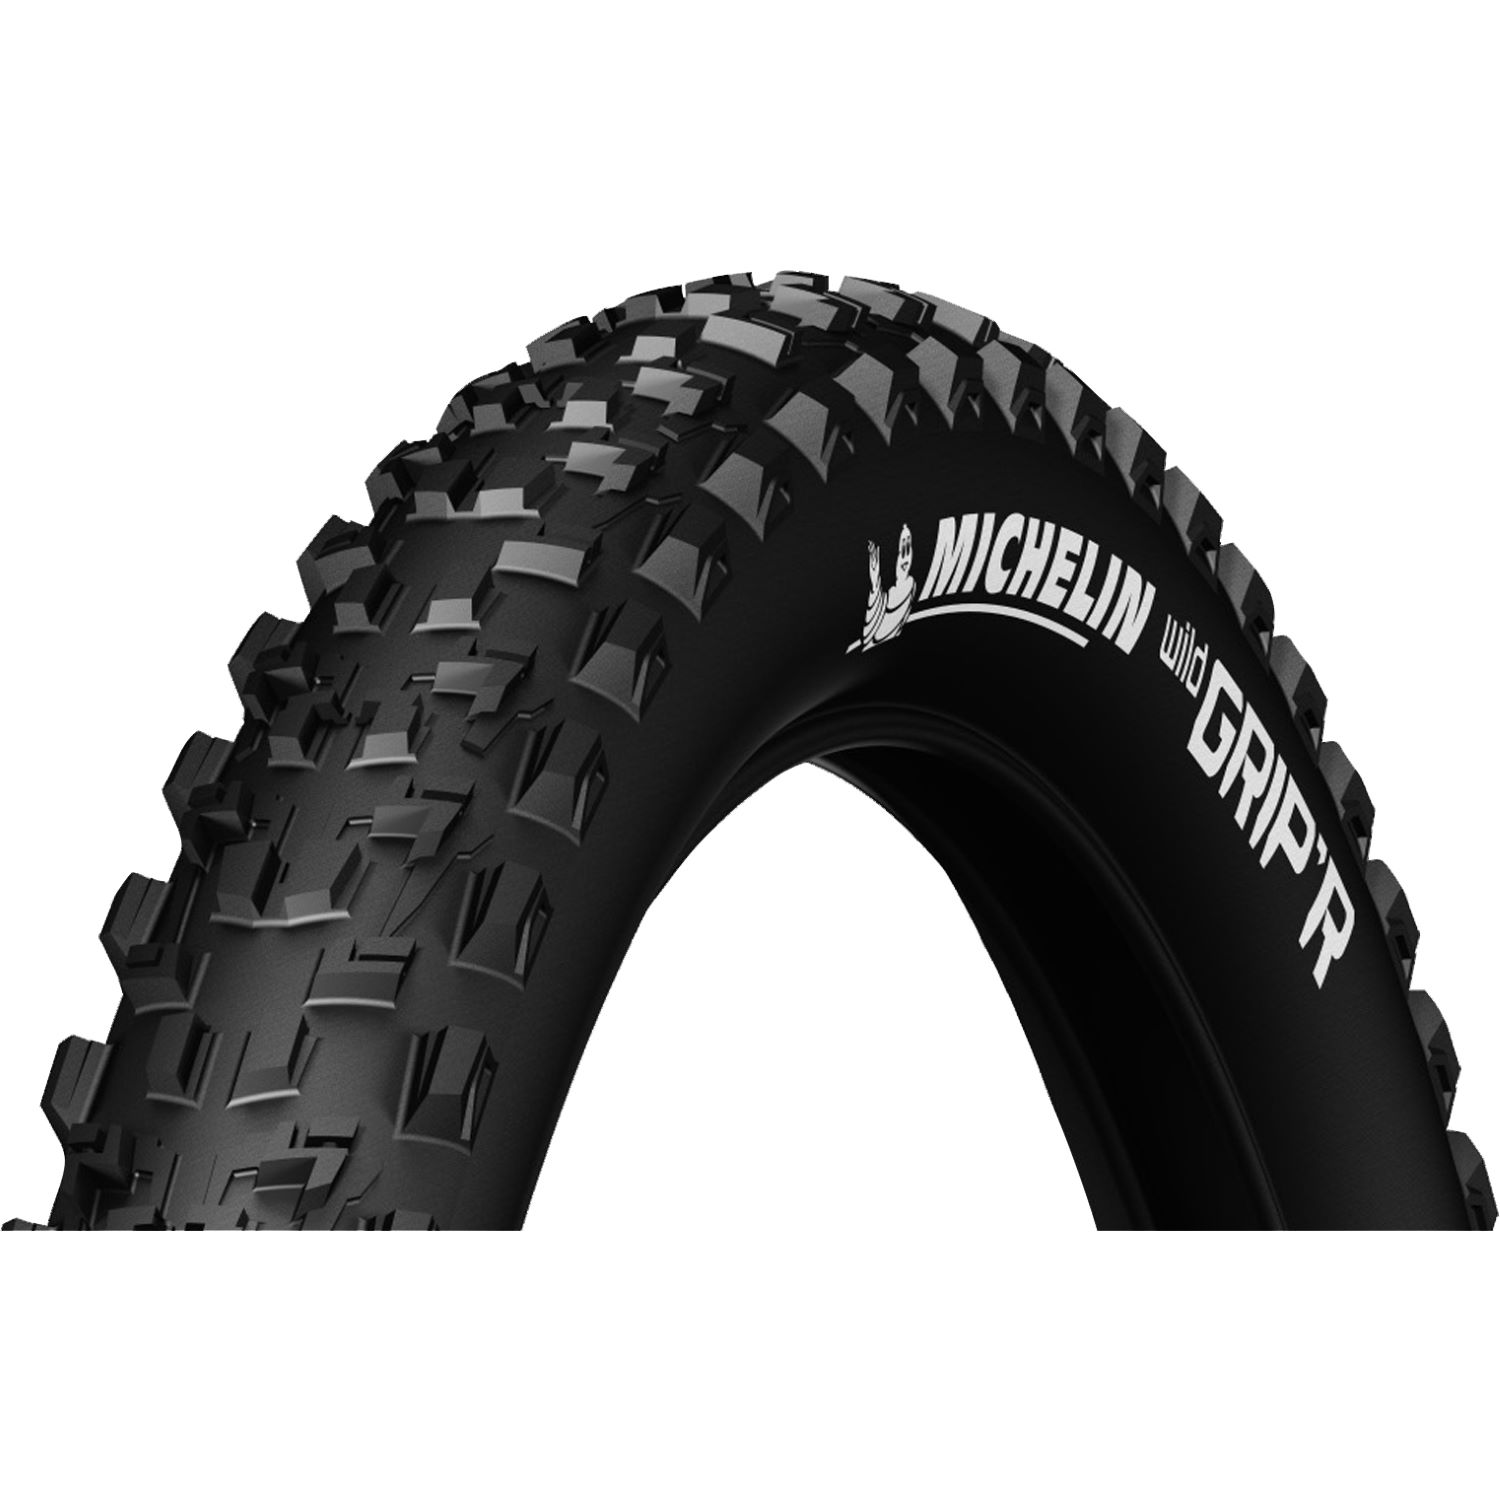 pneus vtt michelin wild grip 39 r 650b folding mtb tyre wiggle france. Black Bedroom Furniture Sets. Home Design Ideas